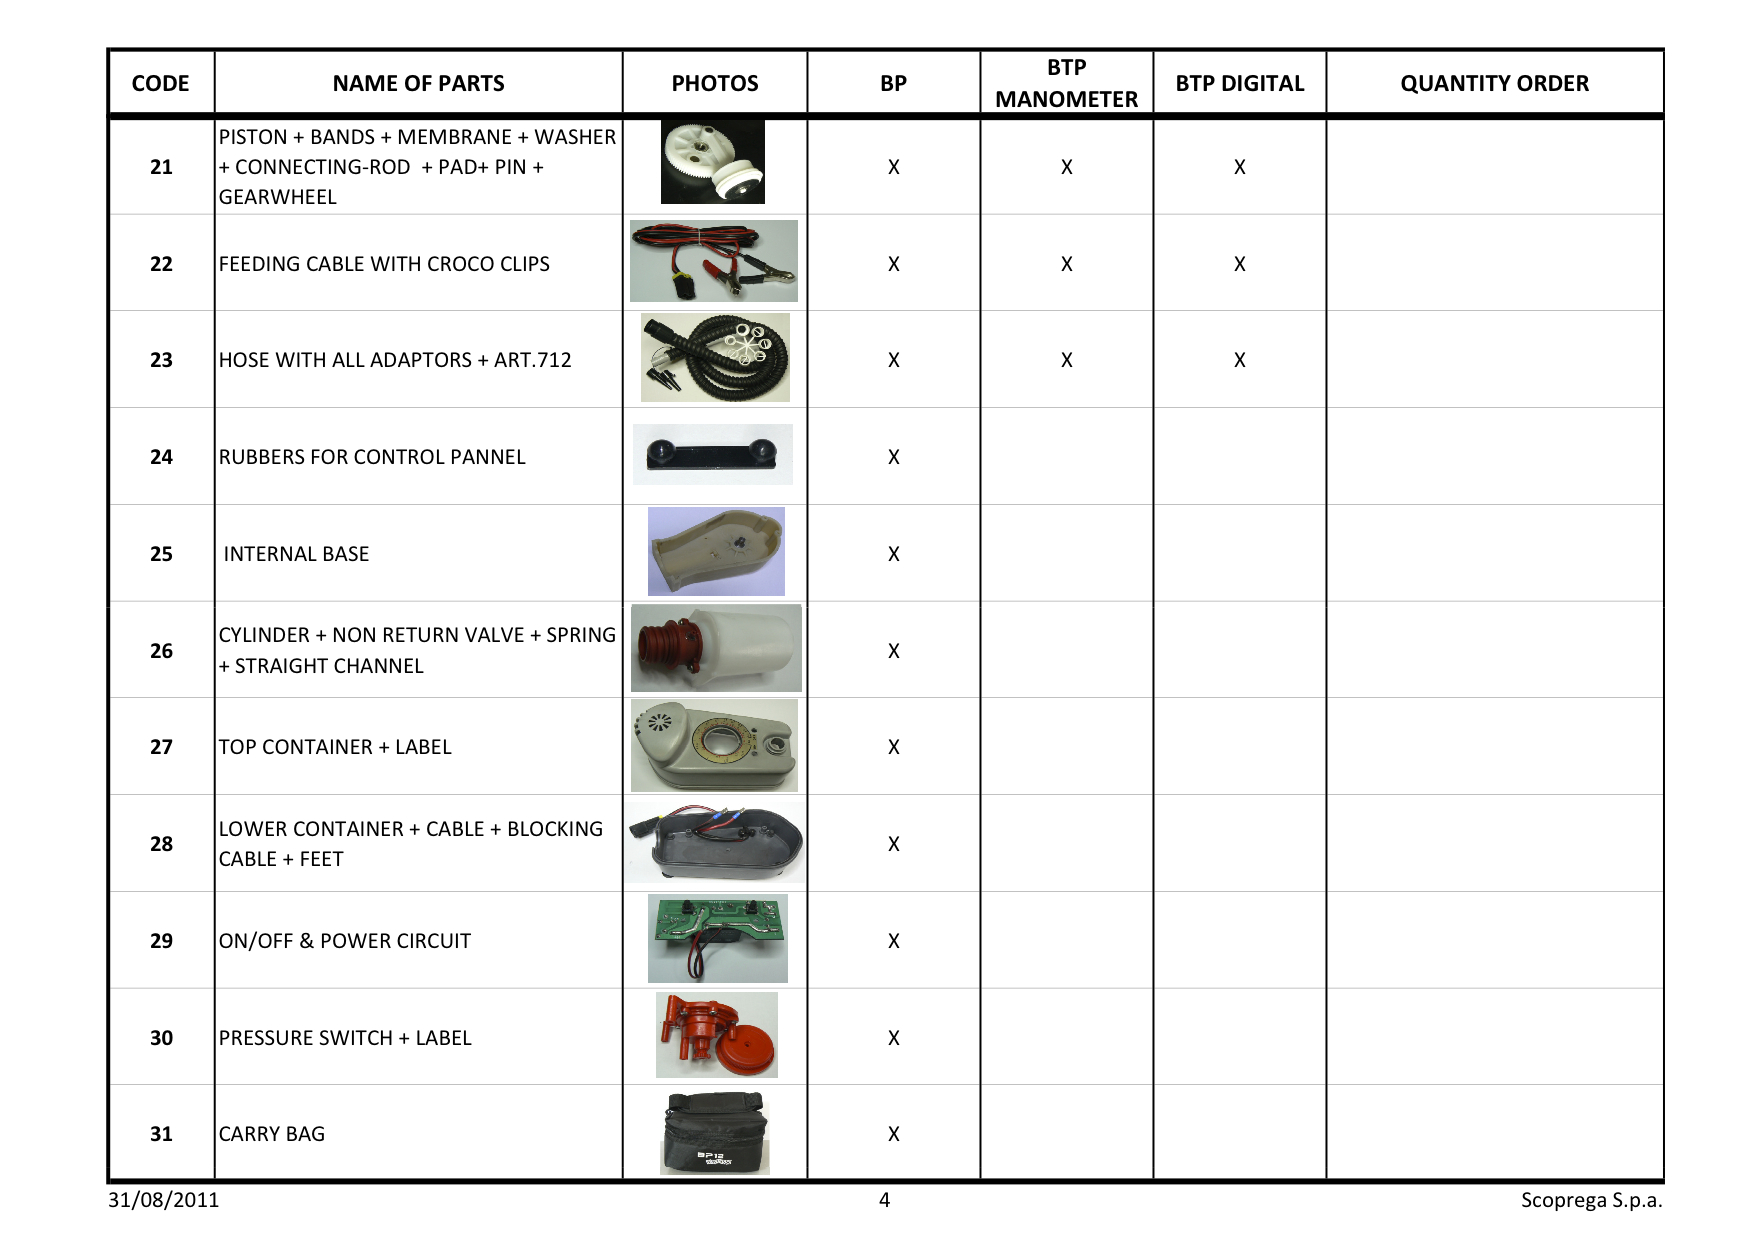 Btp Pump Series Parts Listing From Scoprega Kiteboarding Pumps Describe A Circuit Official For The Bp Electric Kite Please Use These Images And Descriptions When You Are Describing Problem To Us